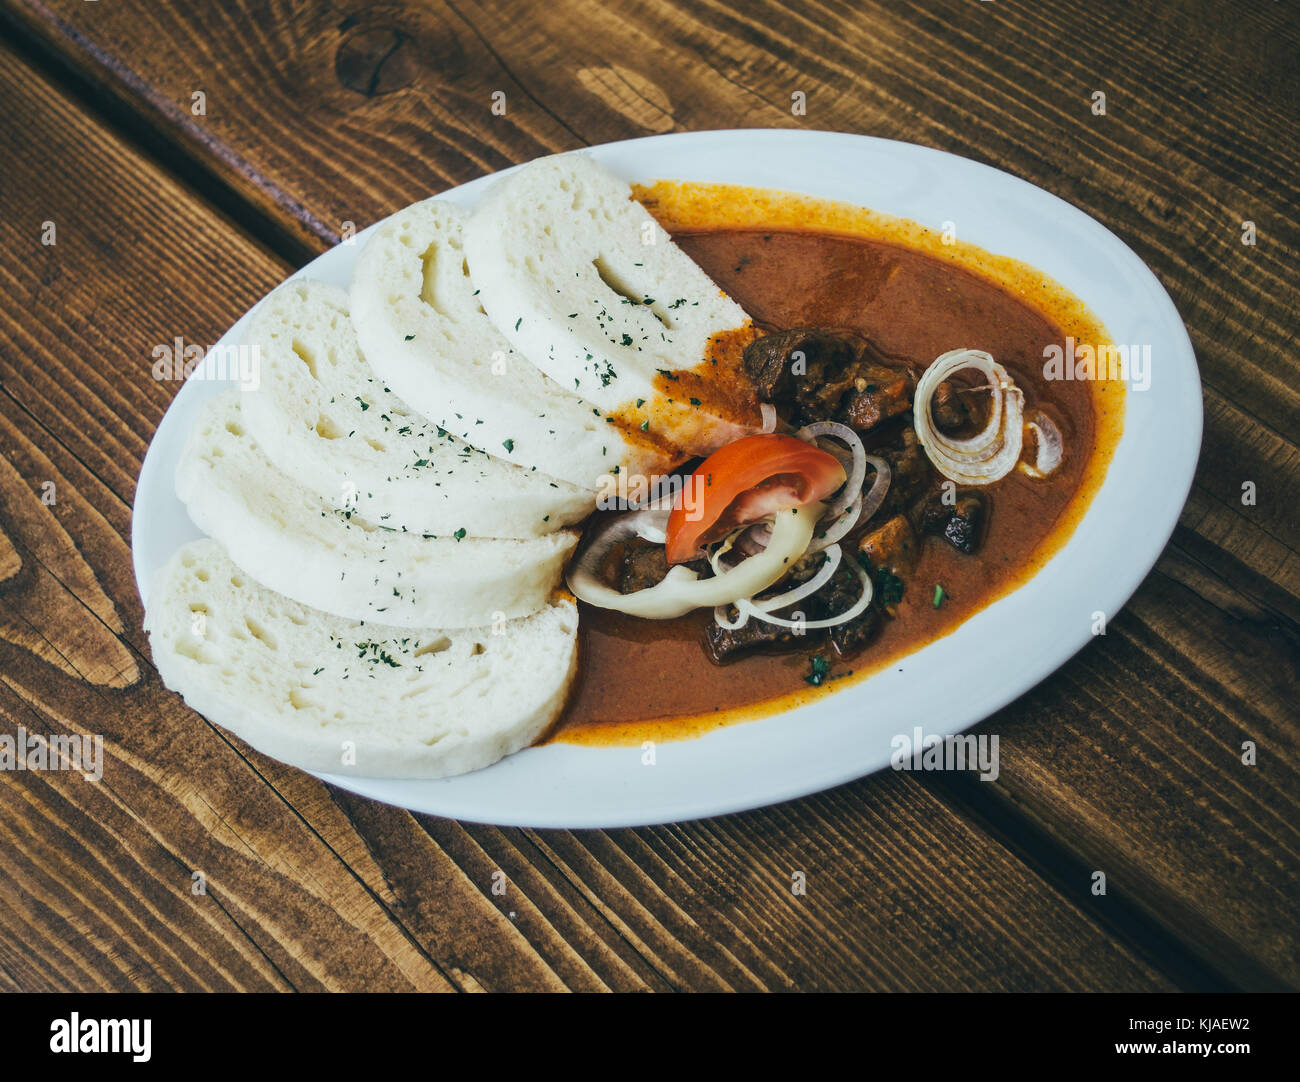 Knedliky with goulash served on a plate standing on a wooden table - Stock Image